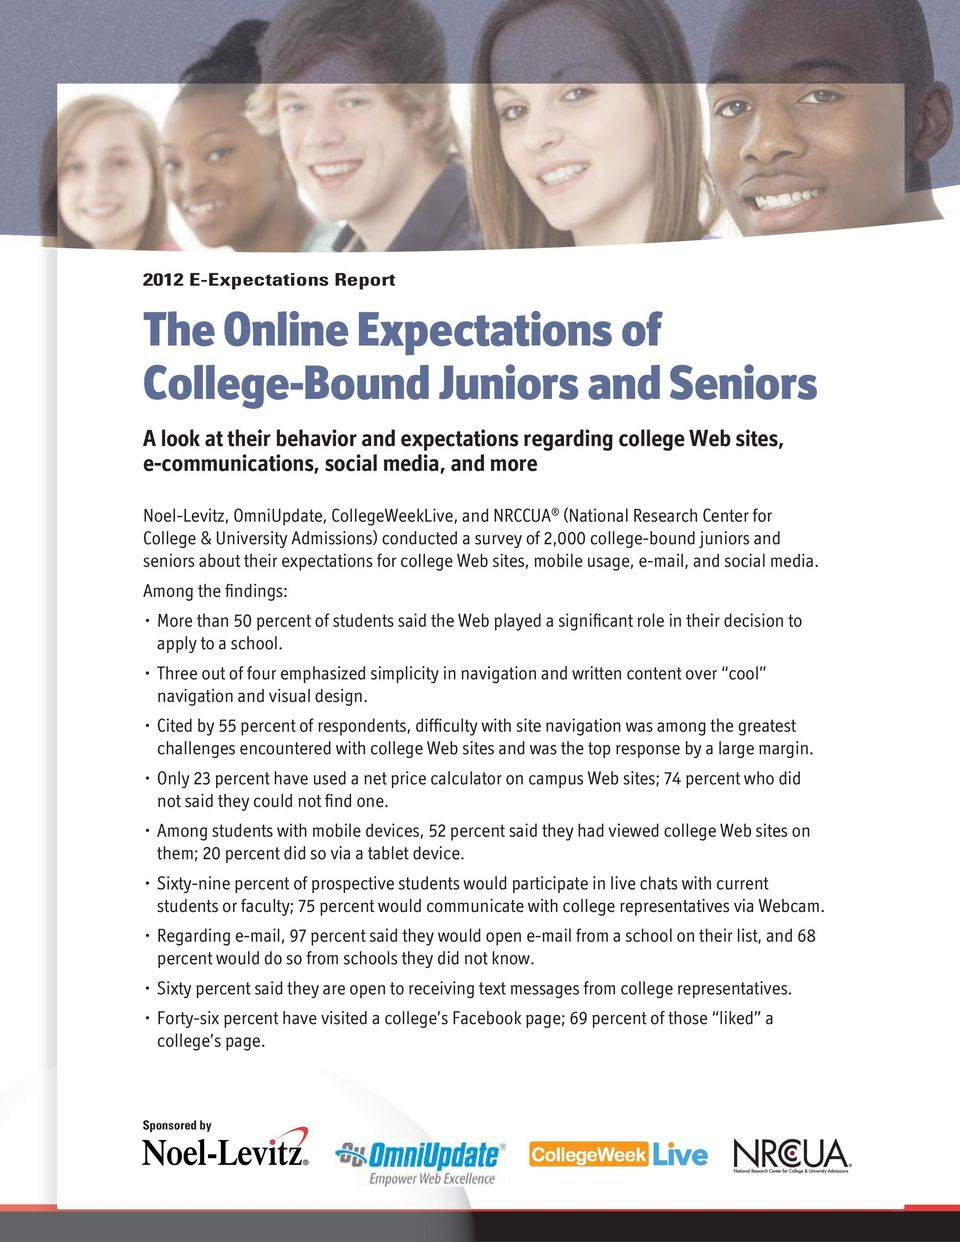 expectations for college Web sites, mobile usage, e-mail, and social media.